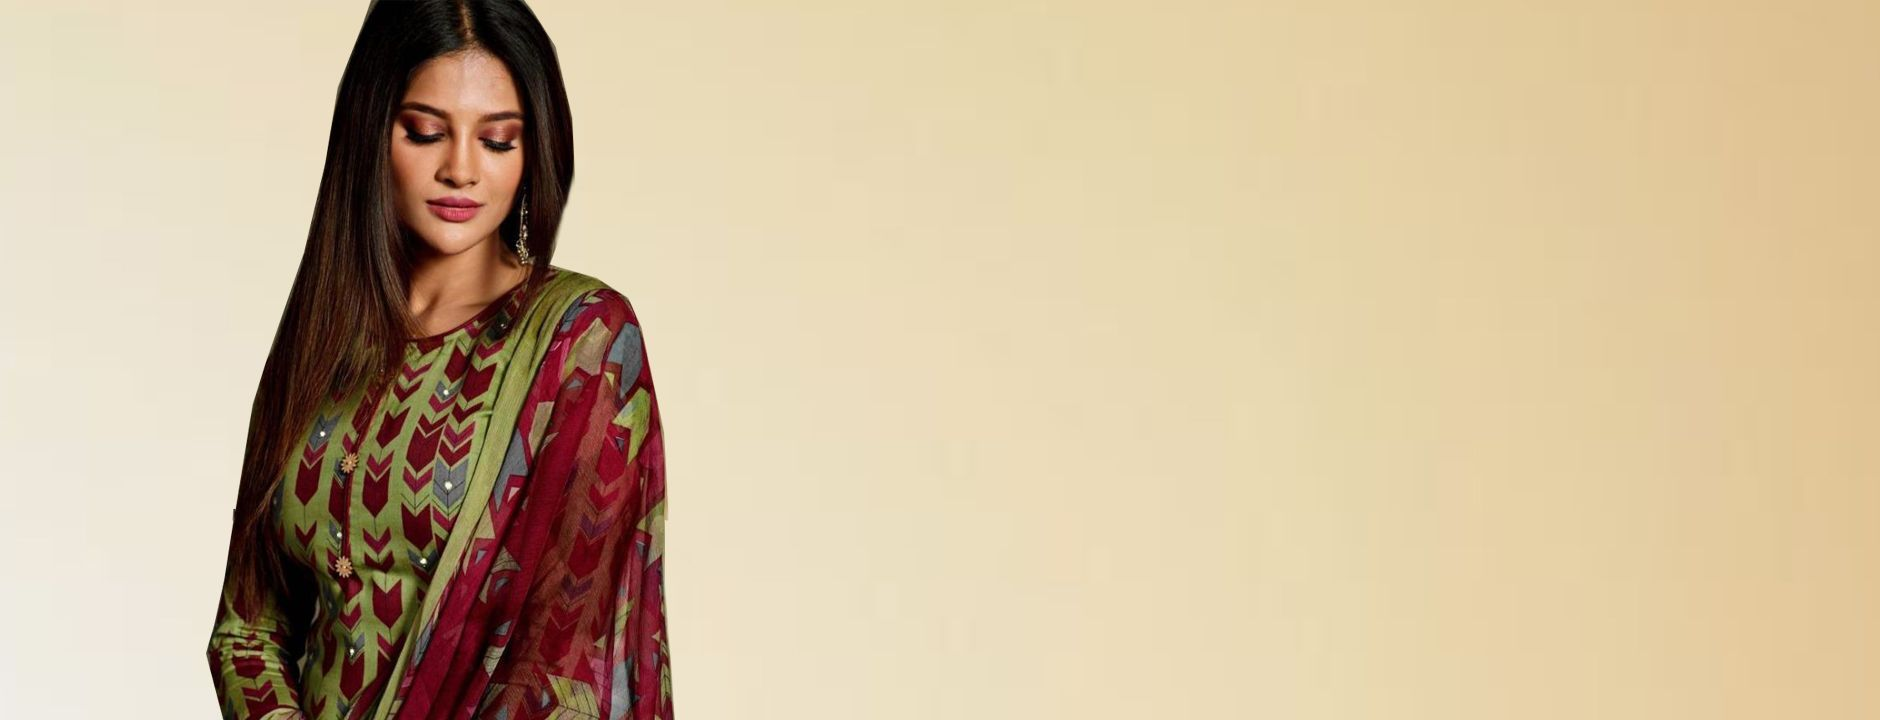 Prints on Salwar Kameez